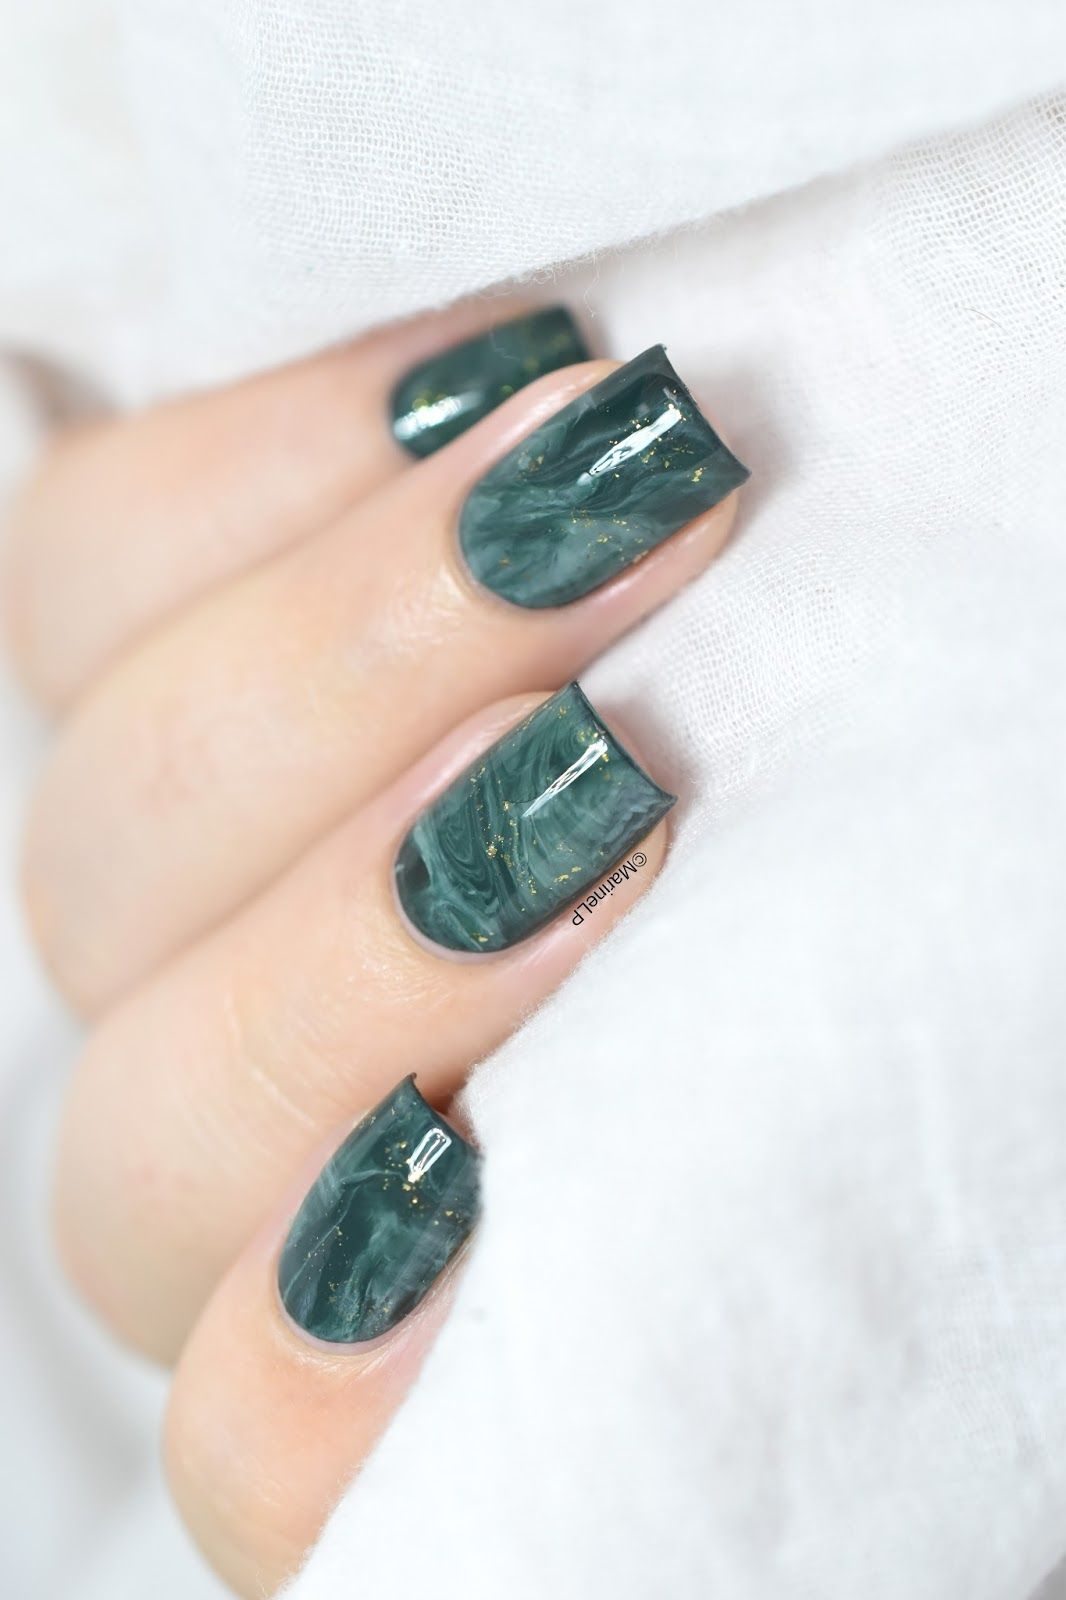 Nailstorming - Objet de déco / Stone marble nail art [VIDEO TUTORIAL ...